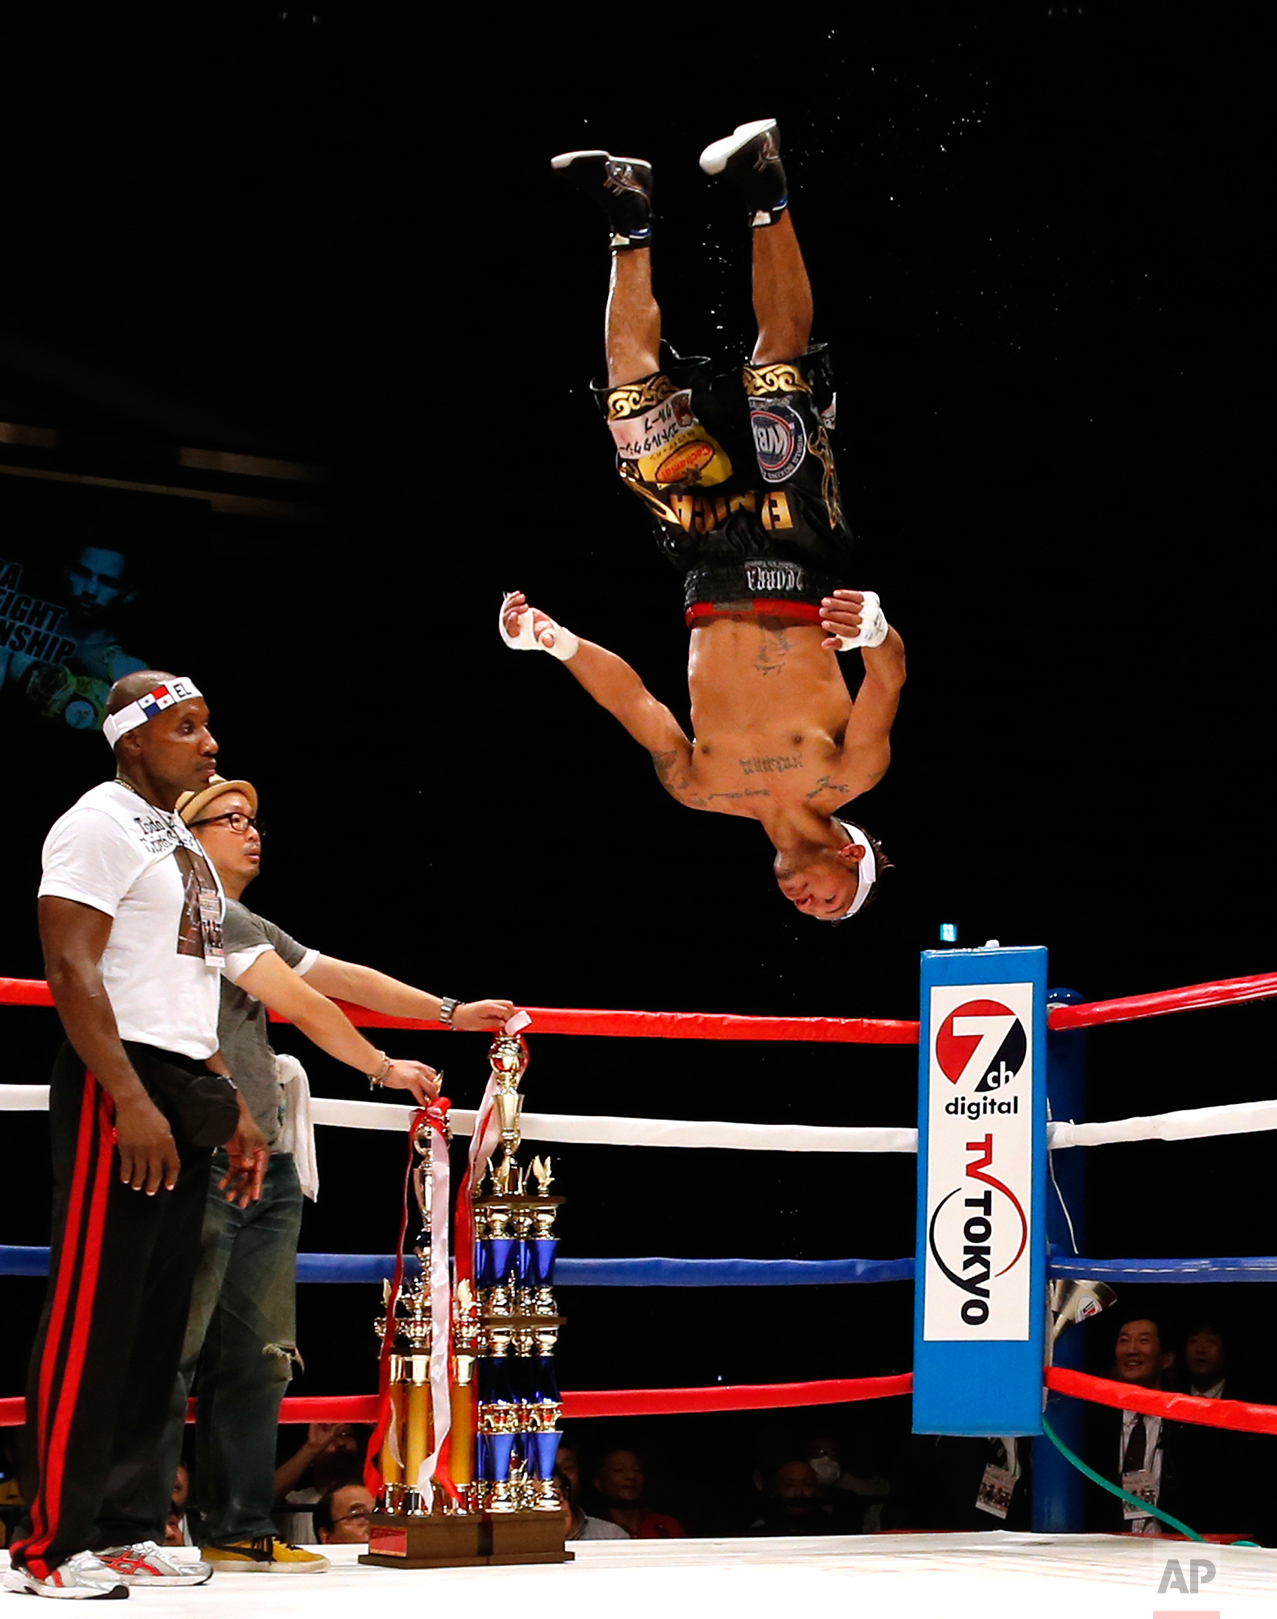 Panama's Luis Concepcion celebrates in the air after beating Japan's Kohei Kono at their WBA world super flyweight title bout in Tokyo, Wednesday, Aug. 31, 2016. Concepcion won the title by a unanimous decision. (AP Photo/Toru Takahashi)